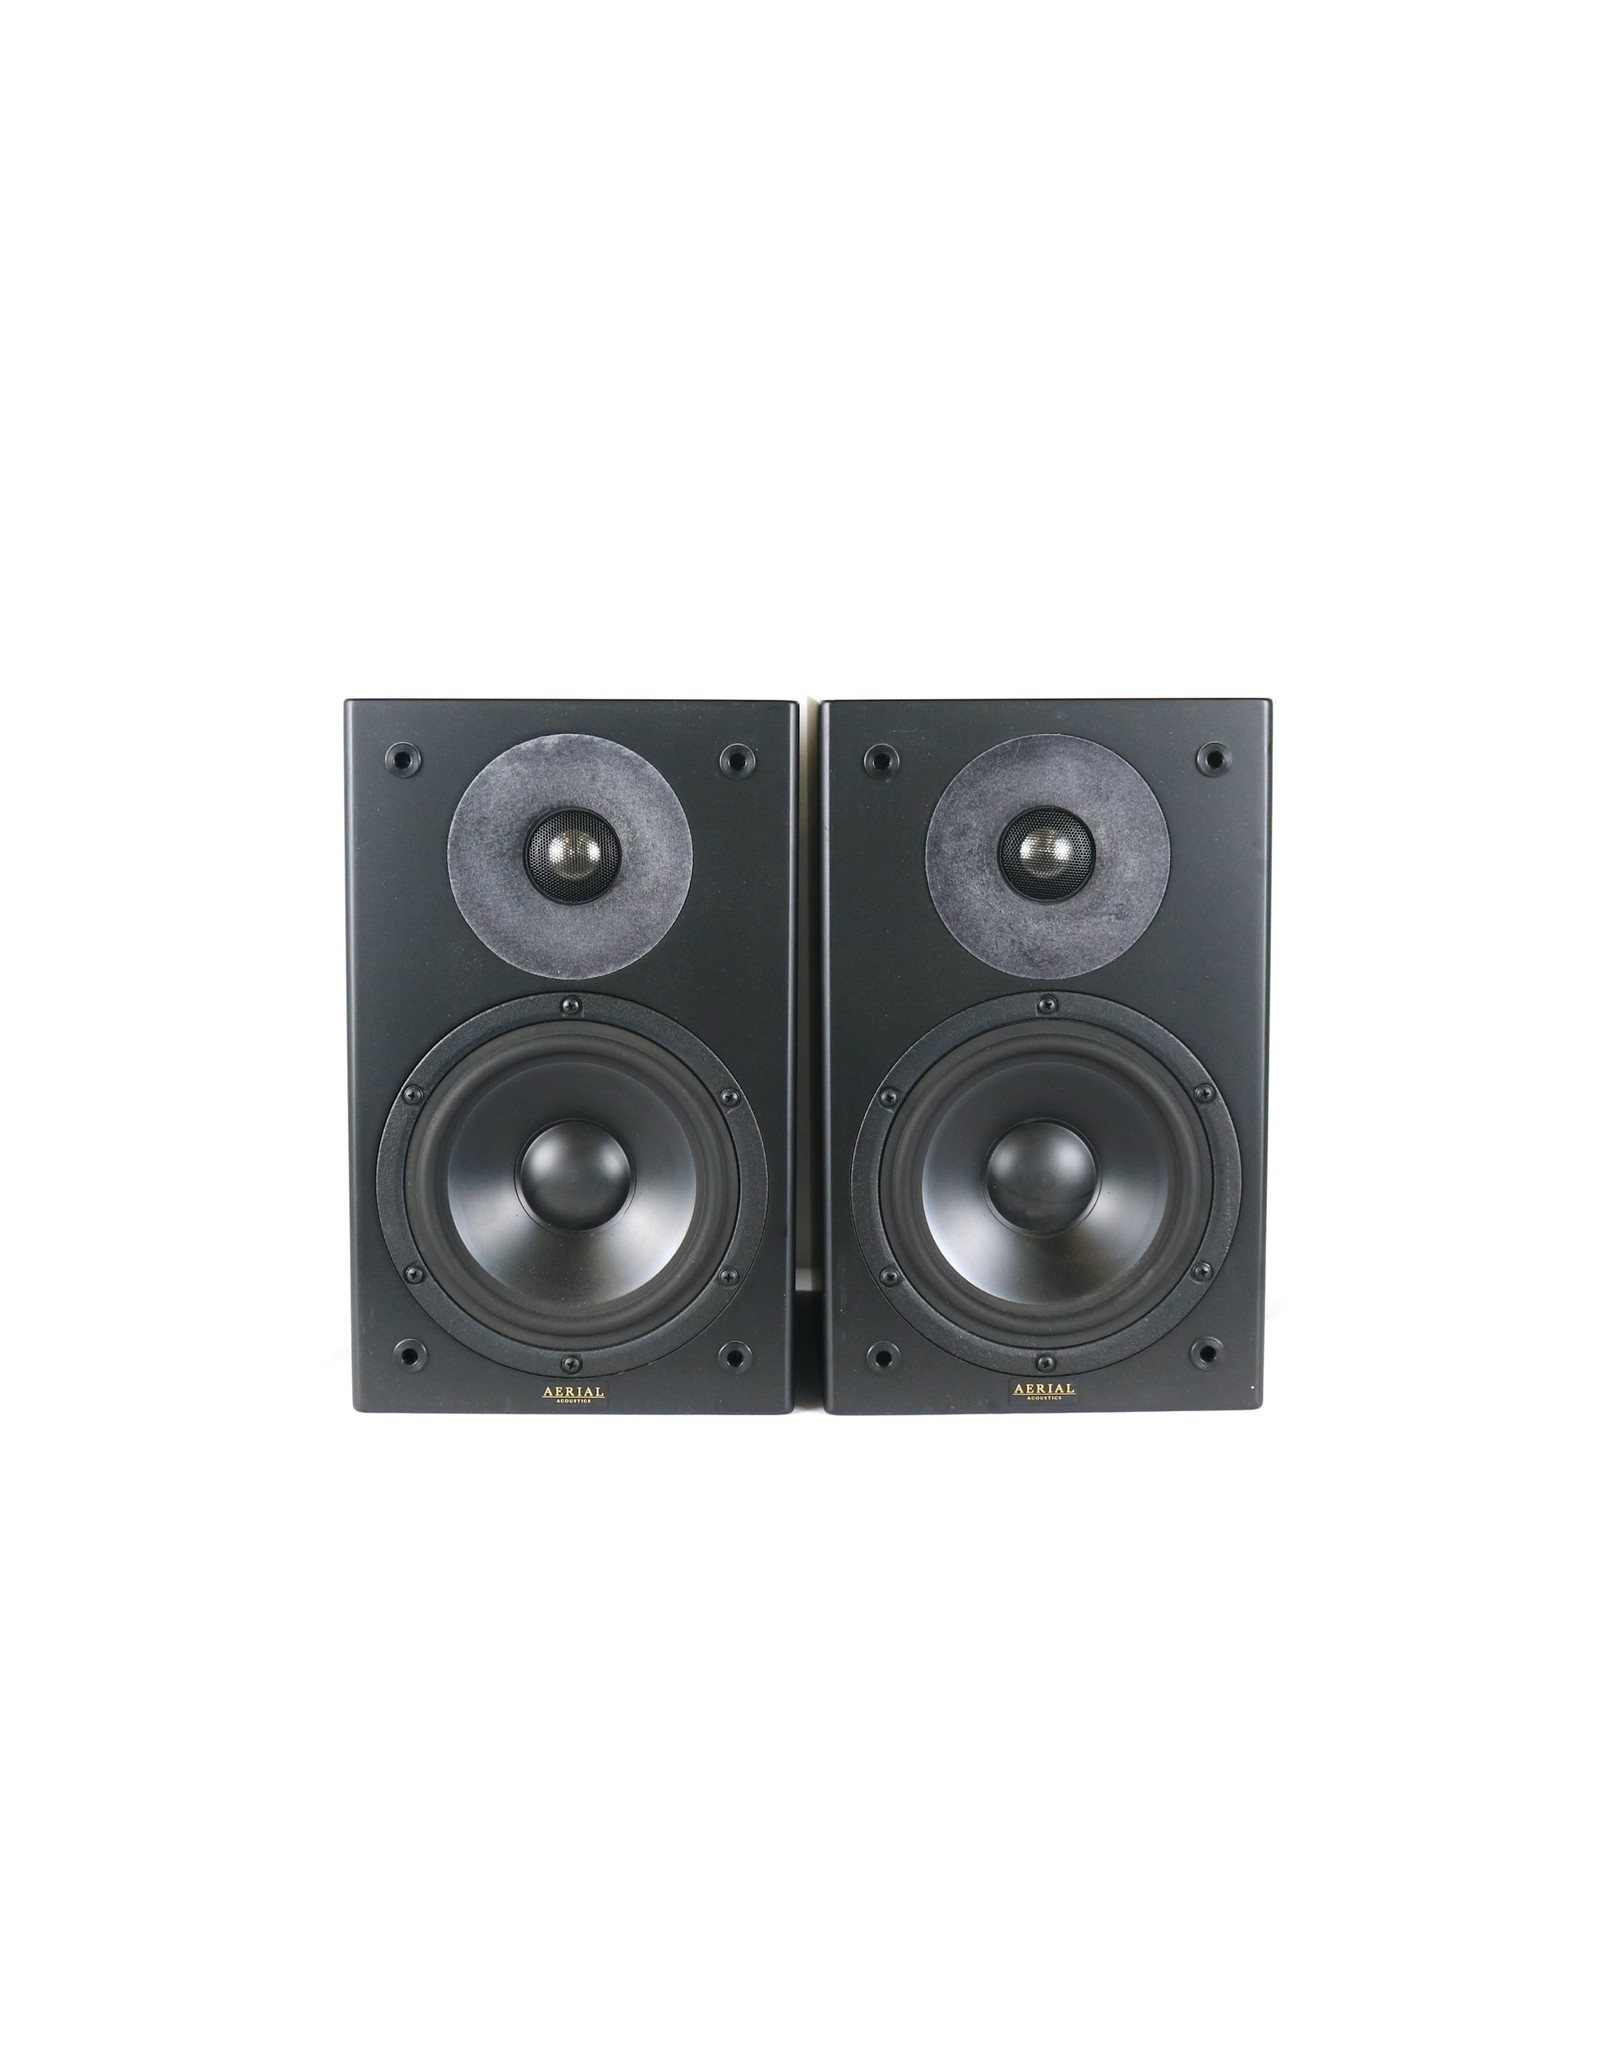 Aerial Acoustics Aerial Acoustics Model 5 Bookshelf Speakers USED